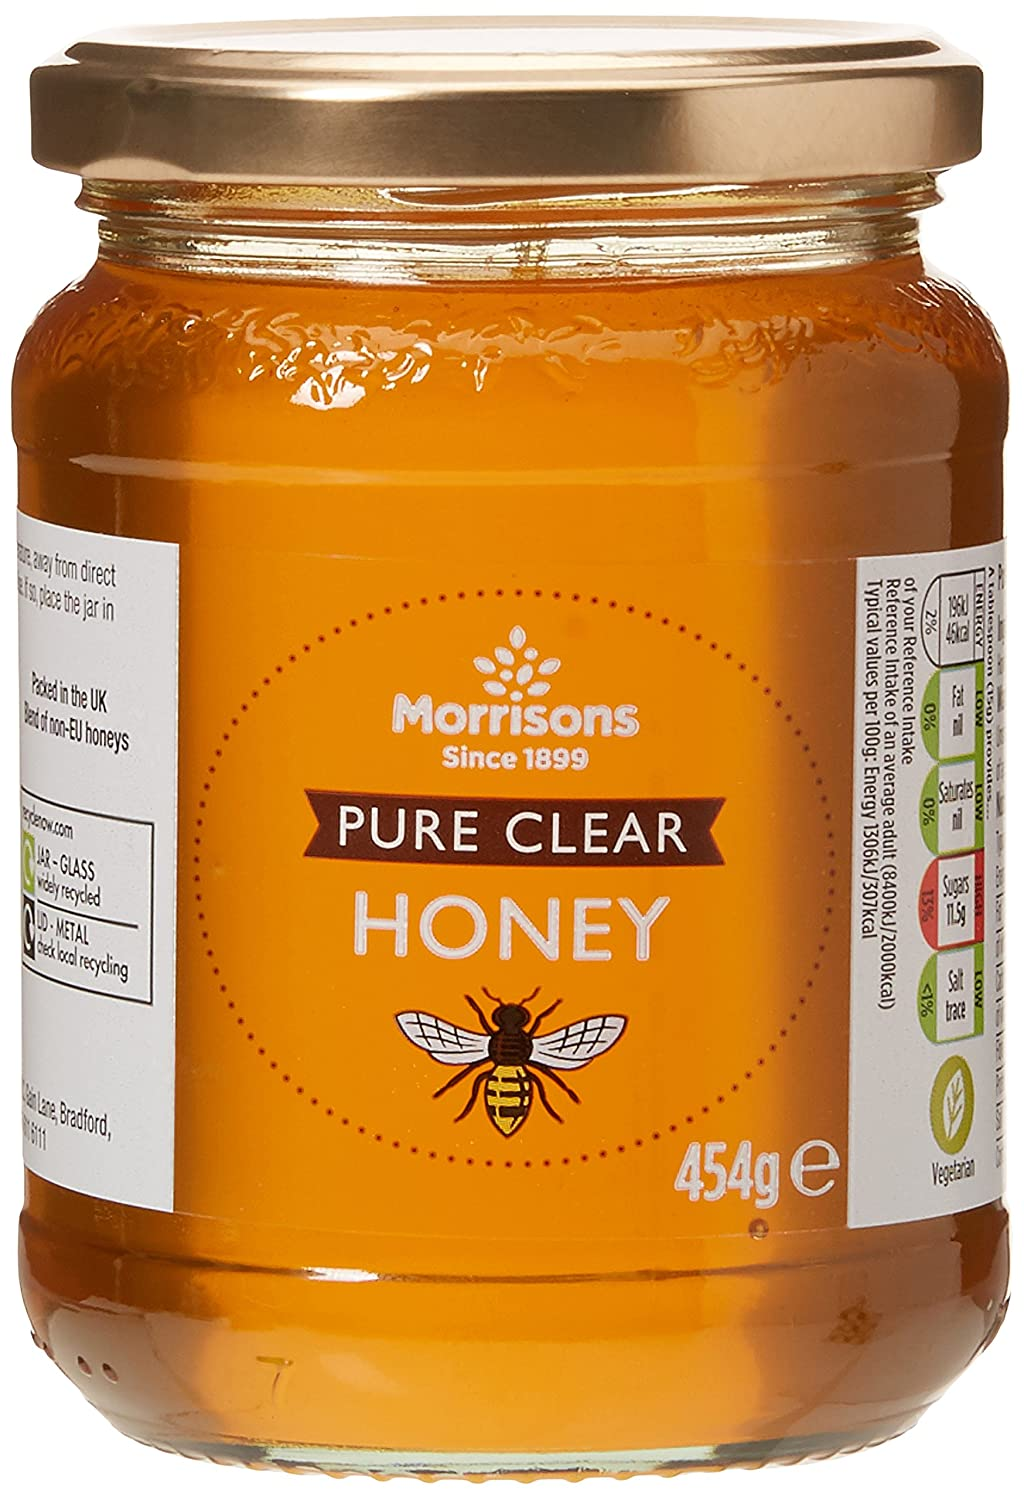 Morrisons Pure Clear Honey 454g Amazoncouk Prime Pantry